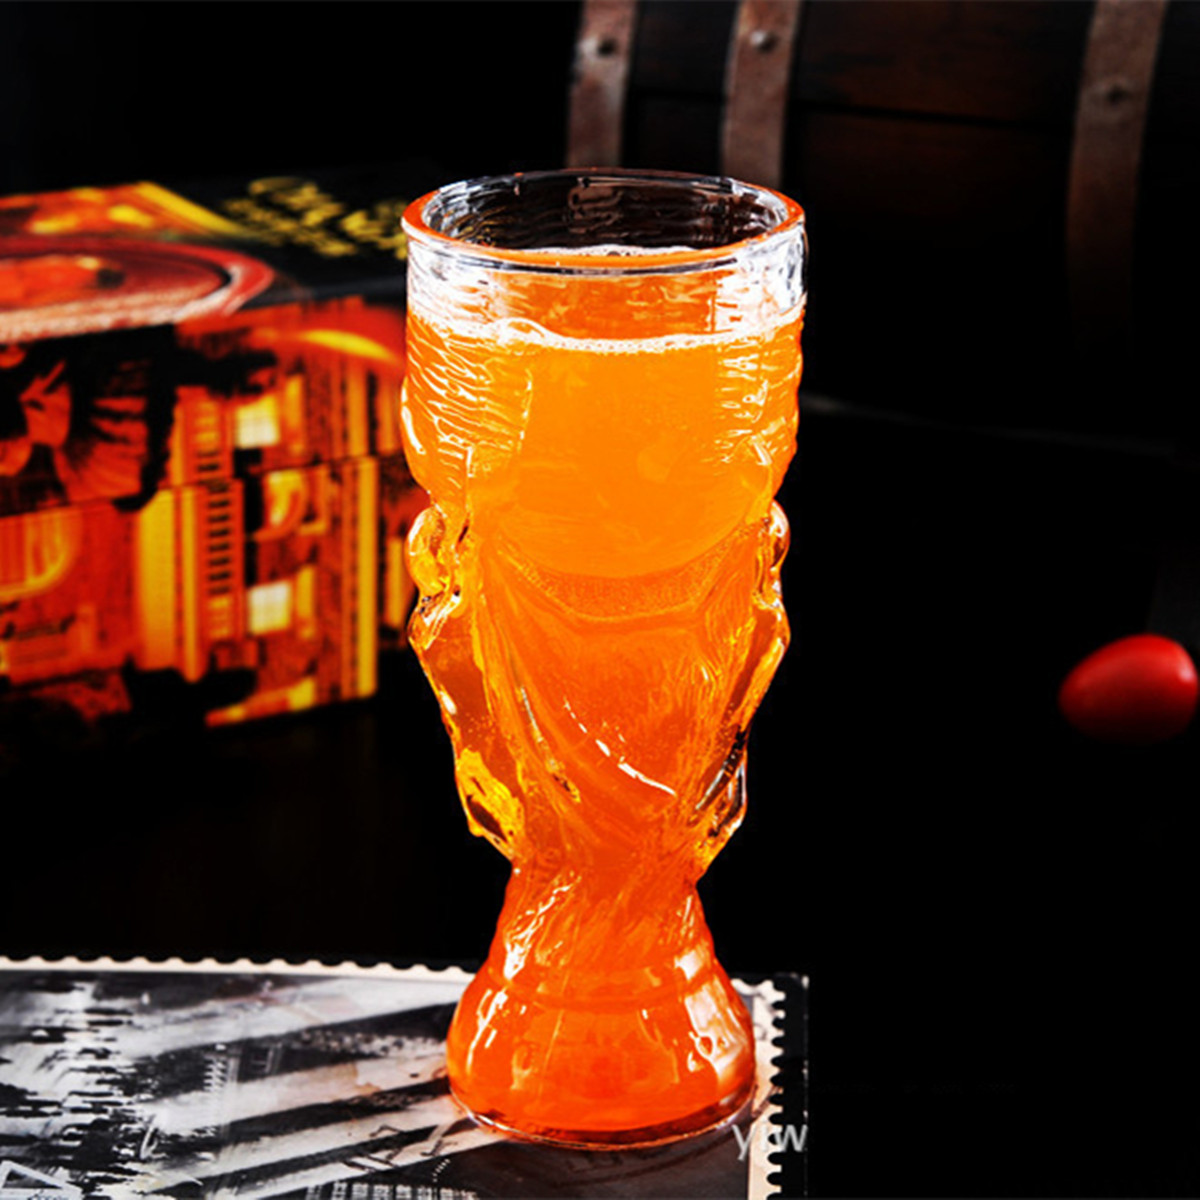 350ml Glass Beer Cup Glasses Crystal Water Whiskey Wine Drinking Mug Football Barware